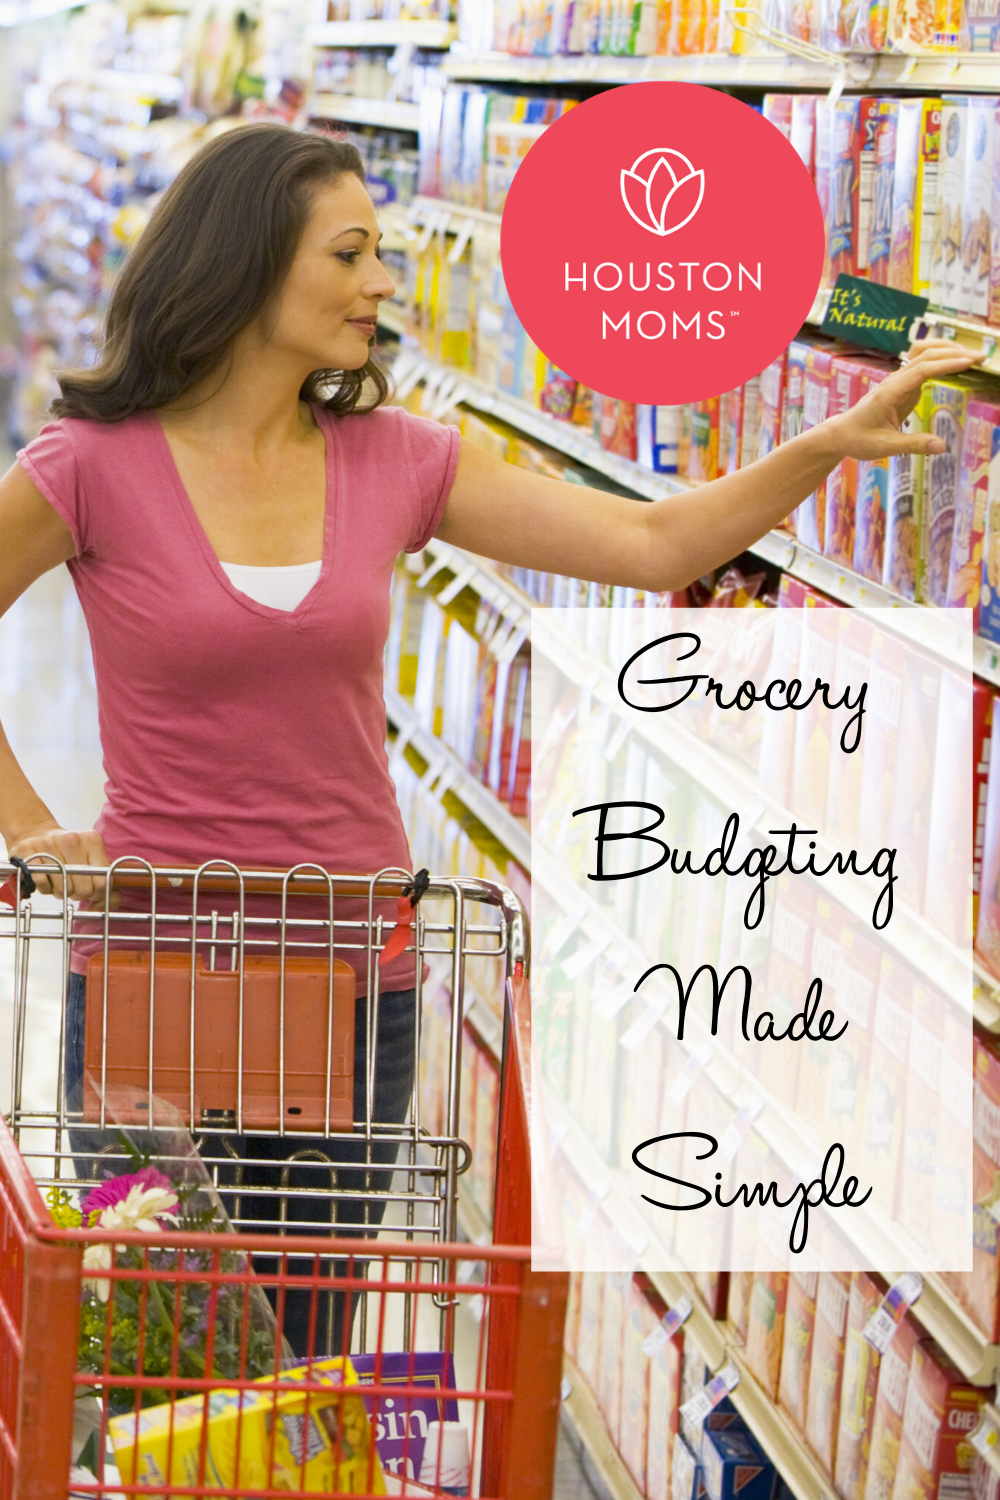 """Houston Moms """"Grocery Shopping Made Simple"""" #houstonmoms #houstonmomsblog #momsaroundhouston"""